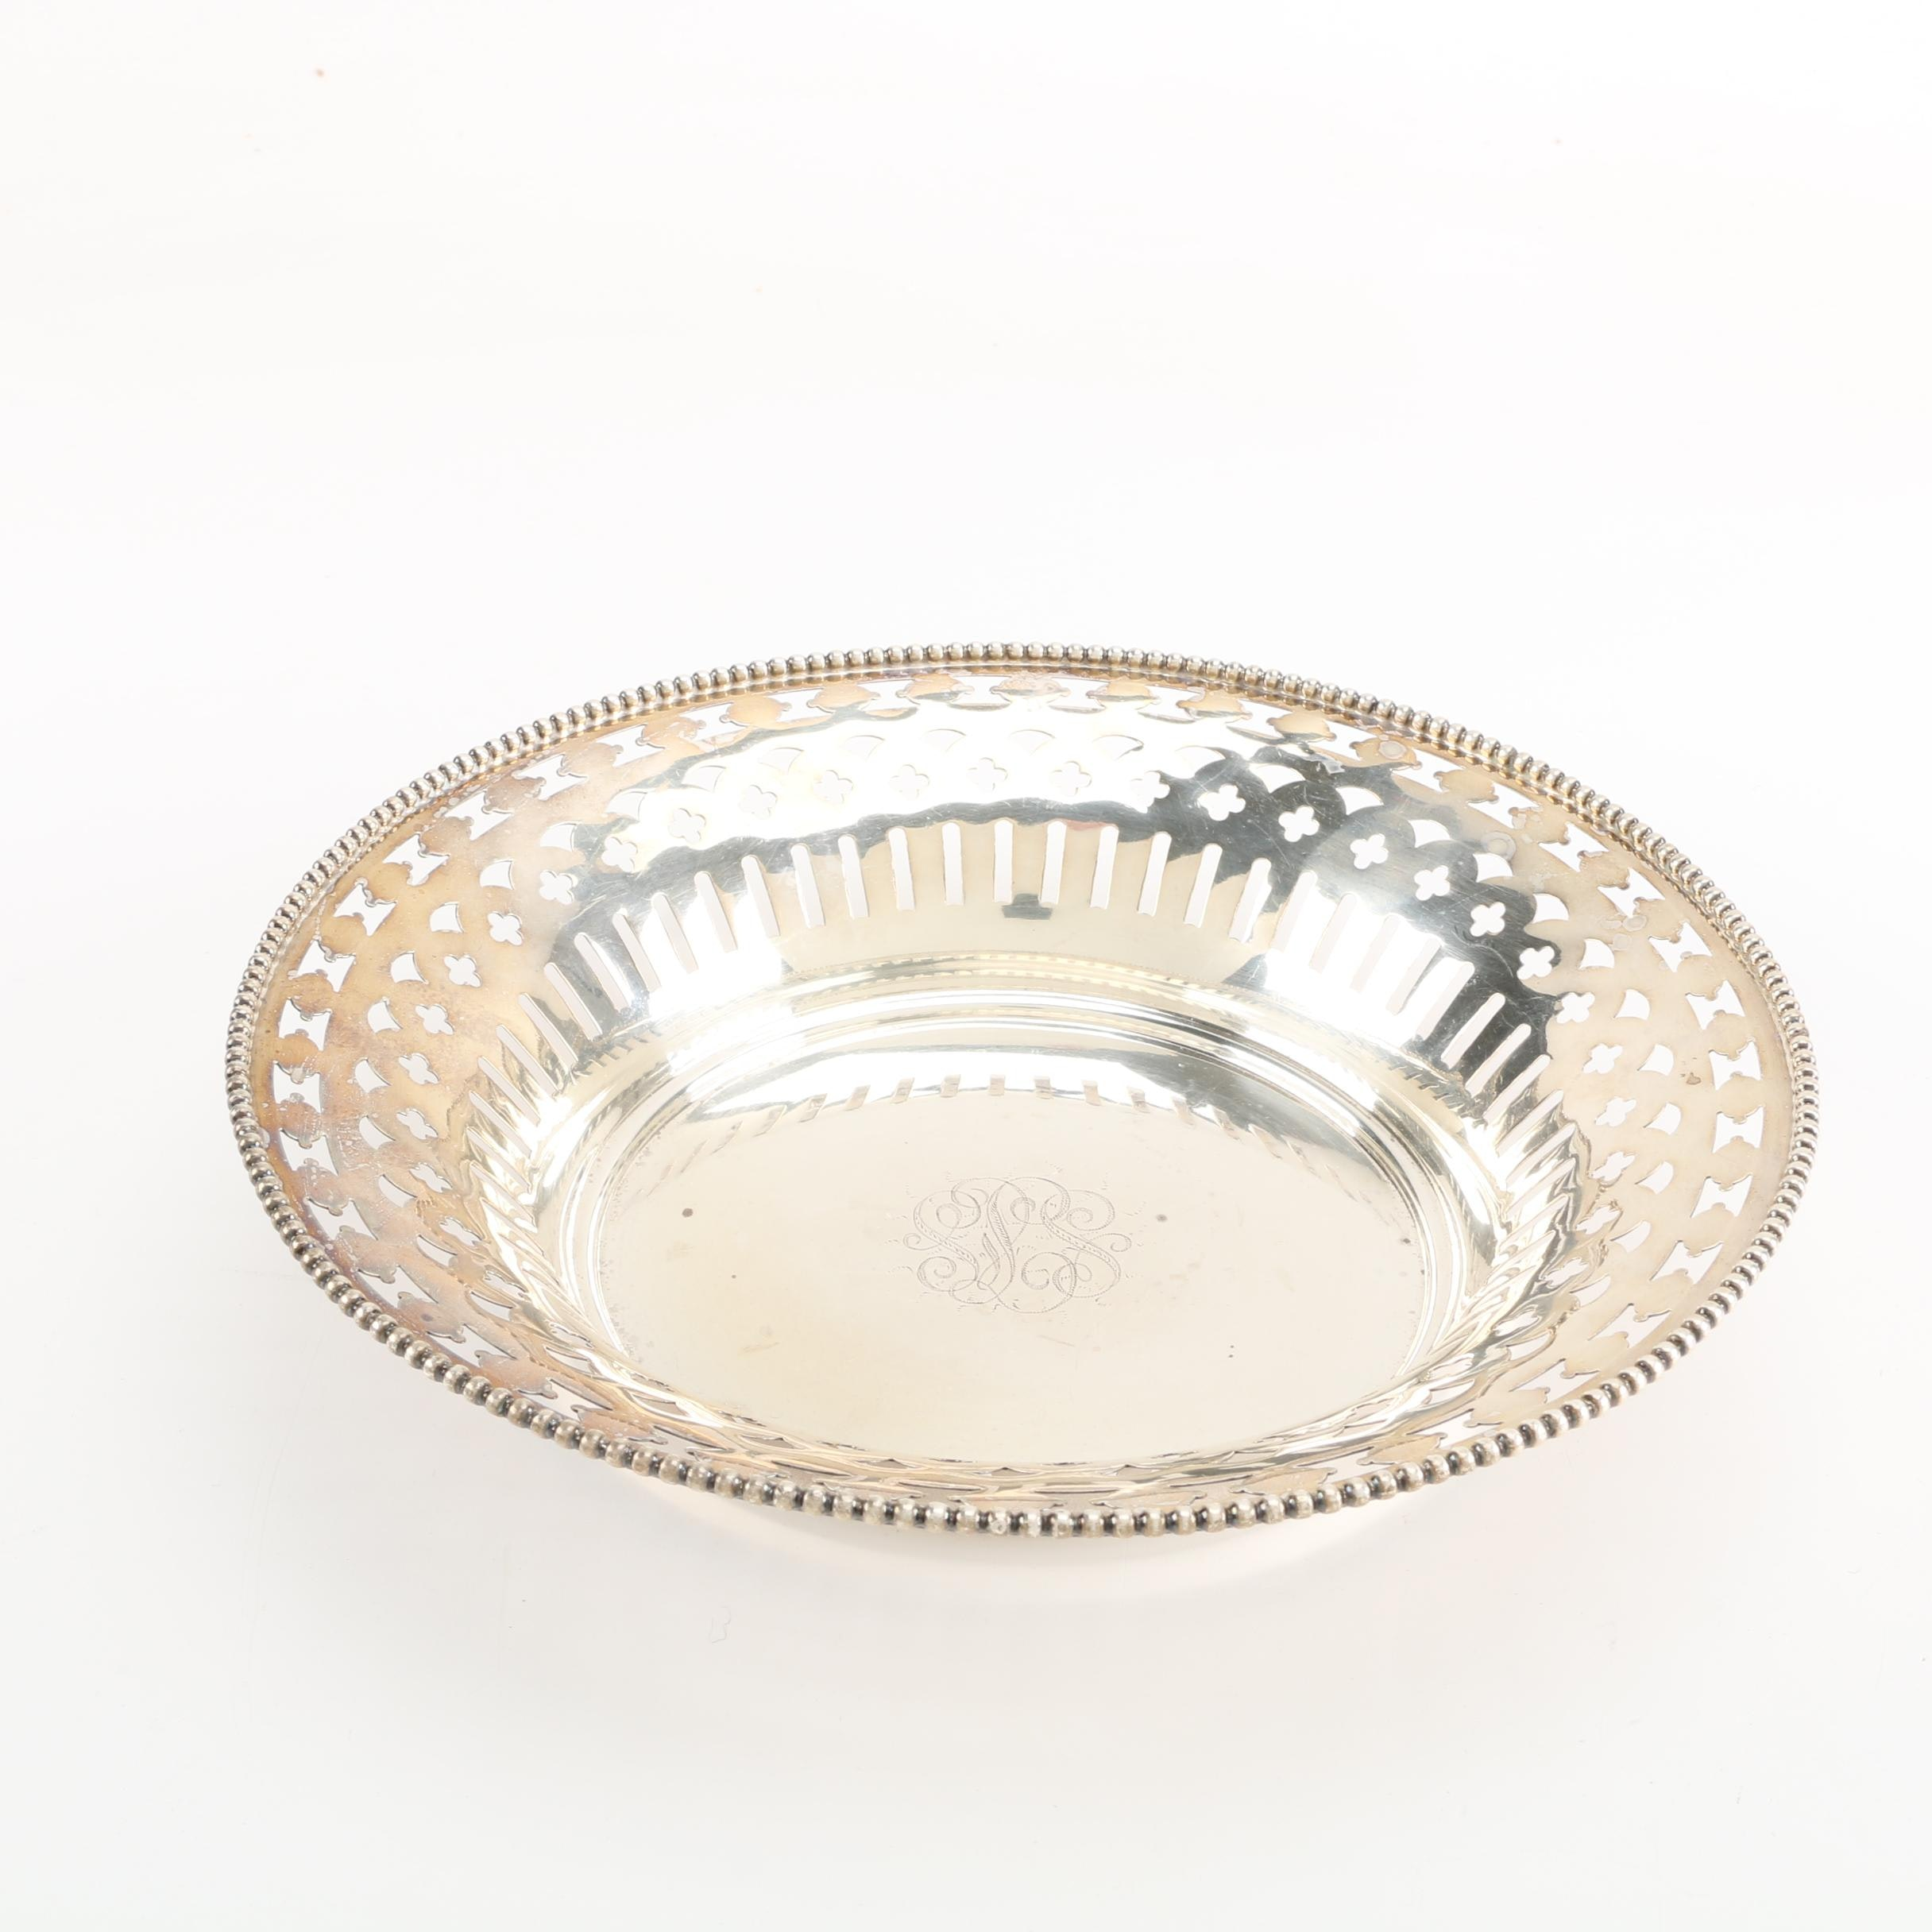 Sterling Silver Bowl with Openwork Sides